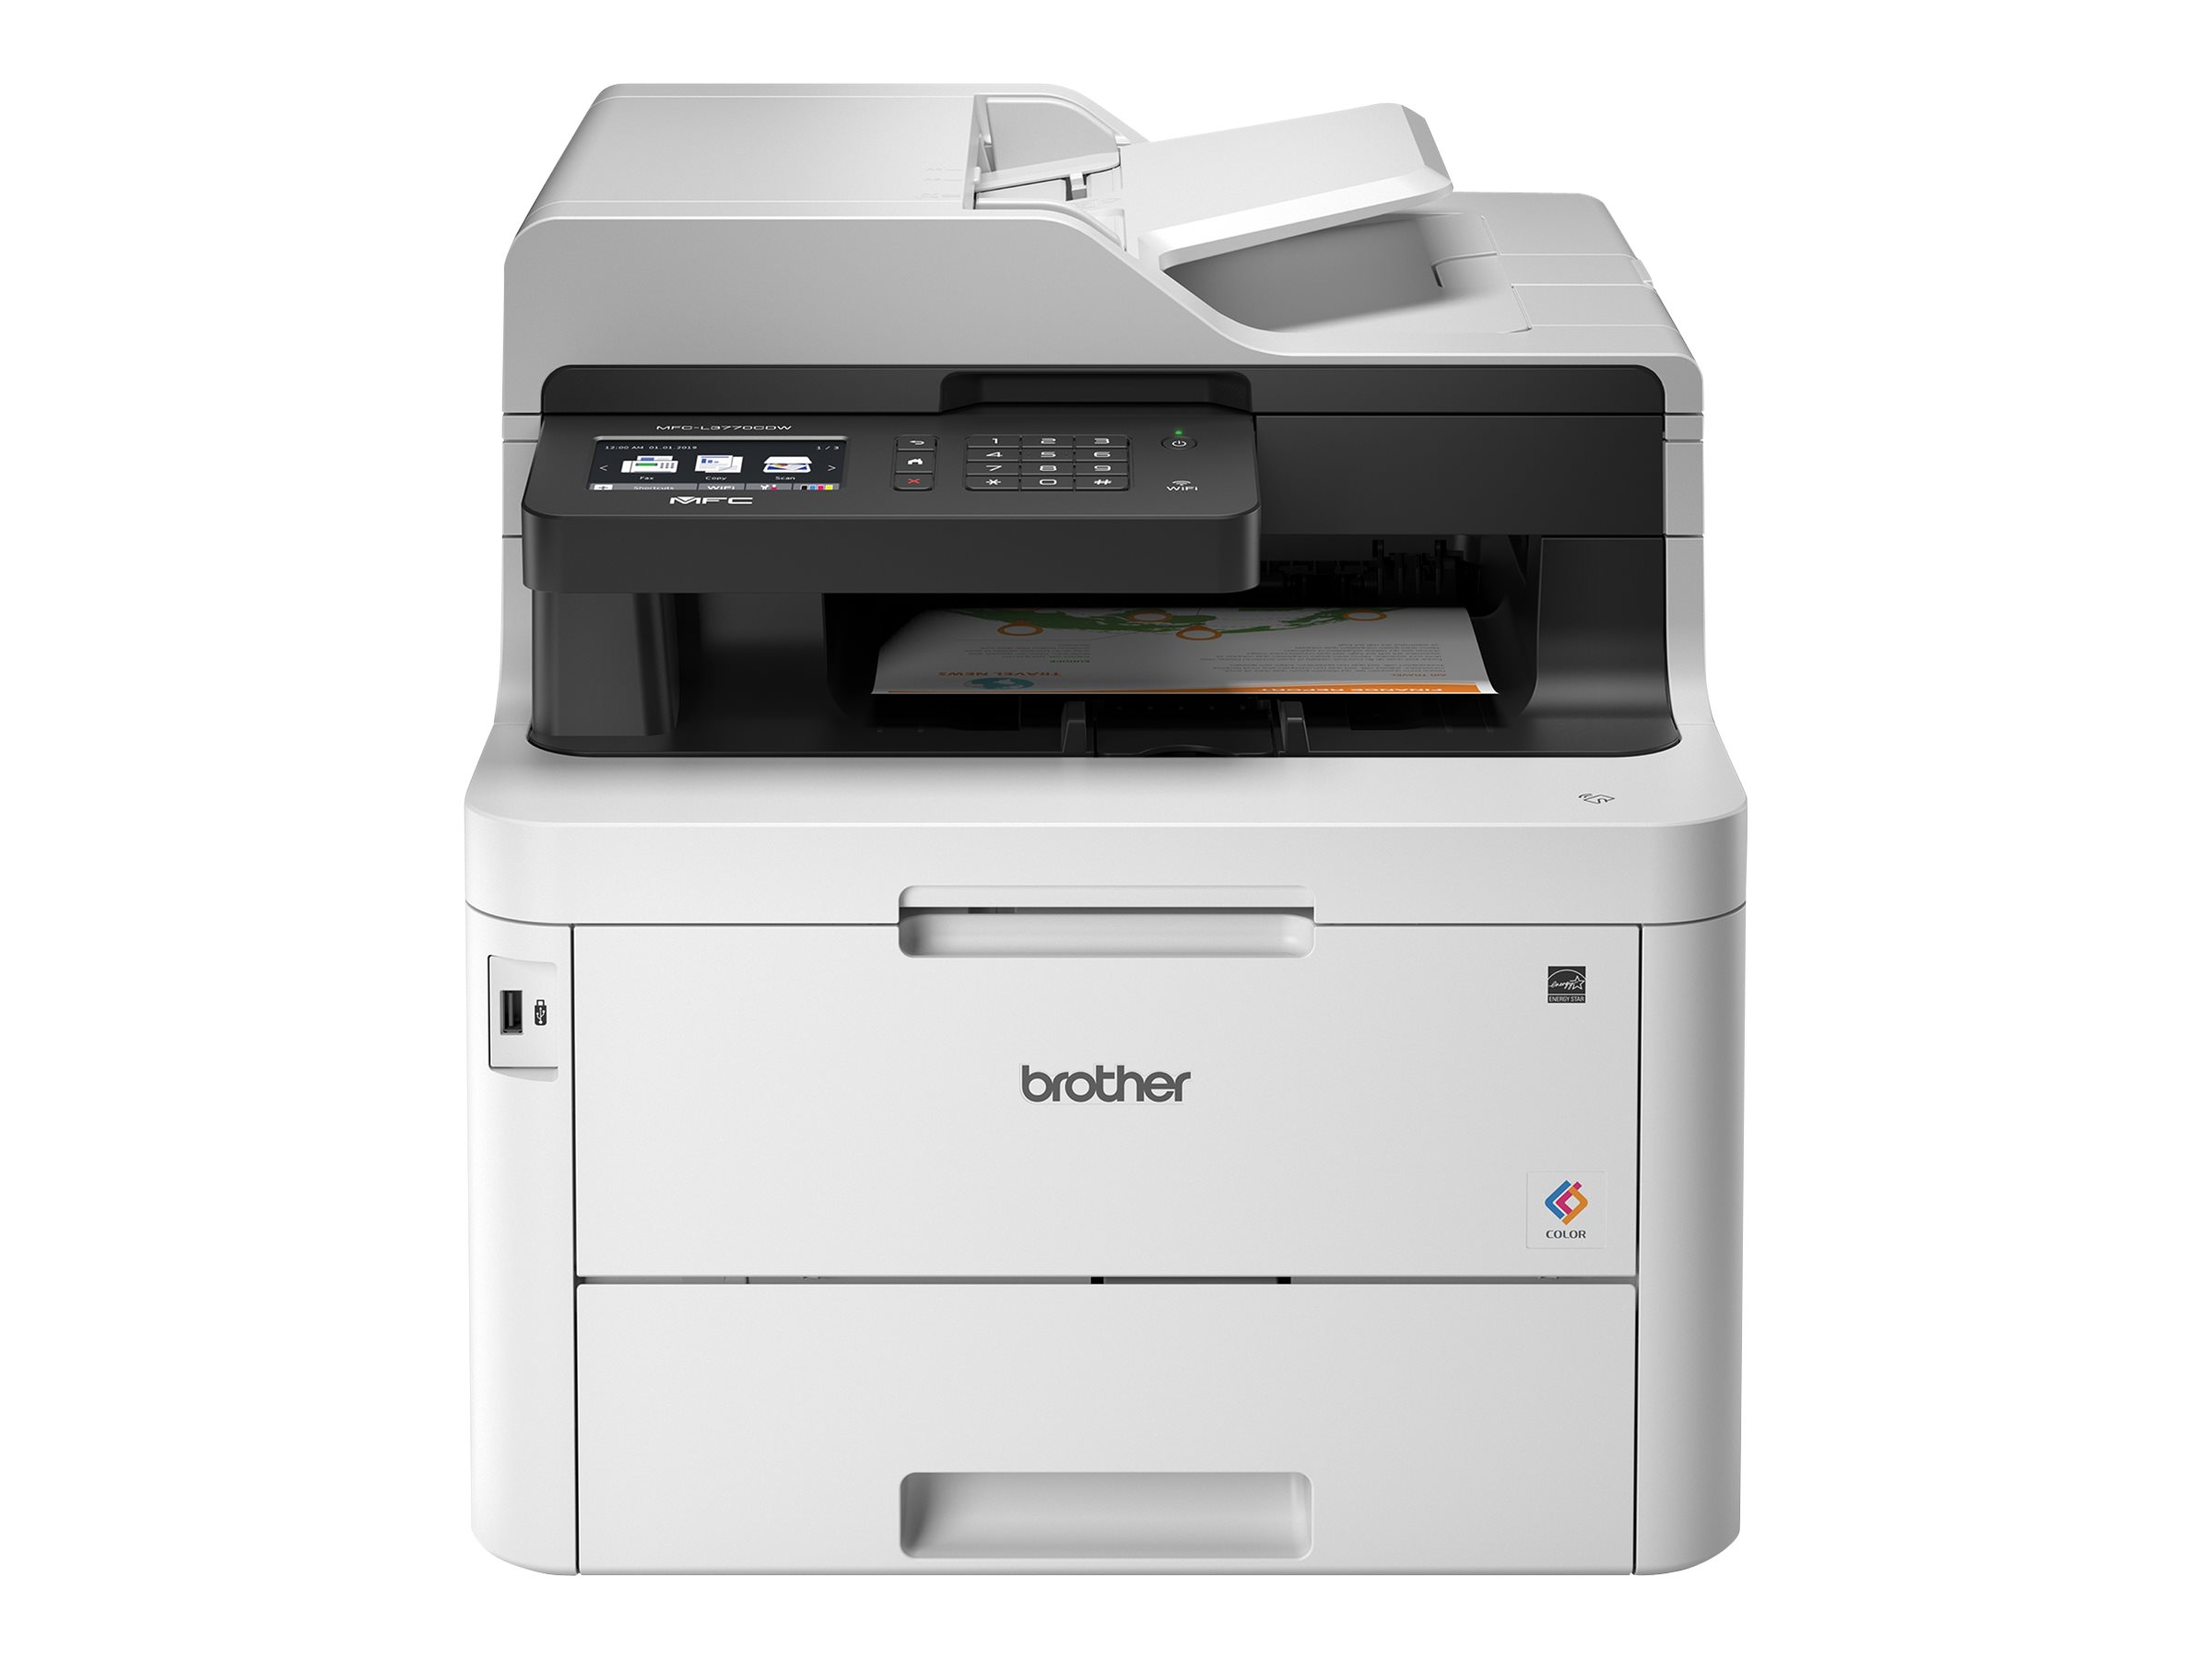 Imprimante laser couleur BROTHER n°MFC-L3770CDW vue avant